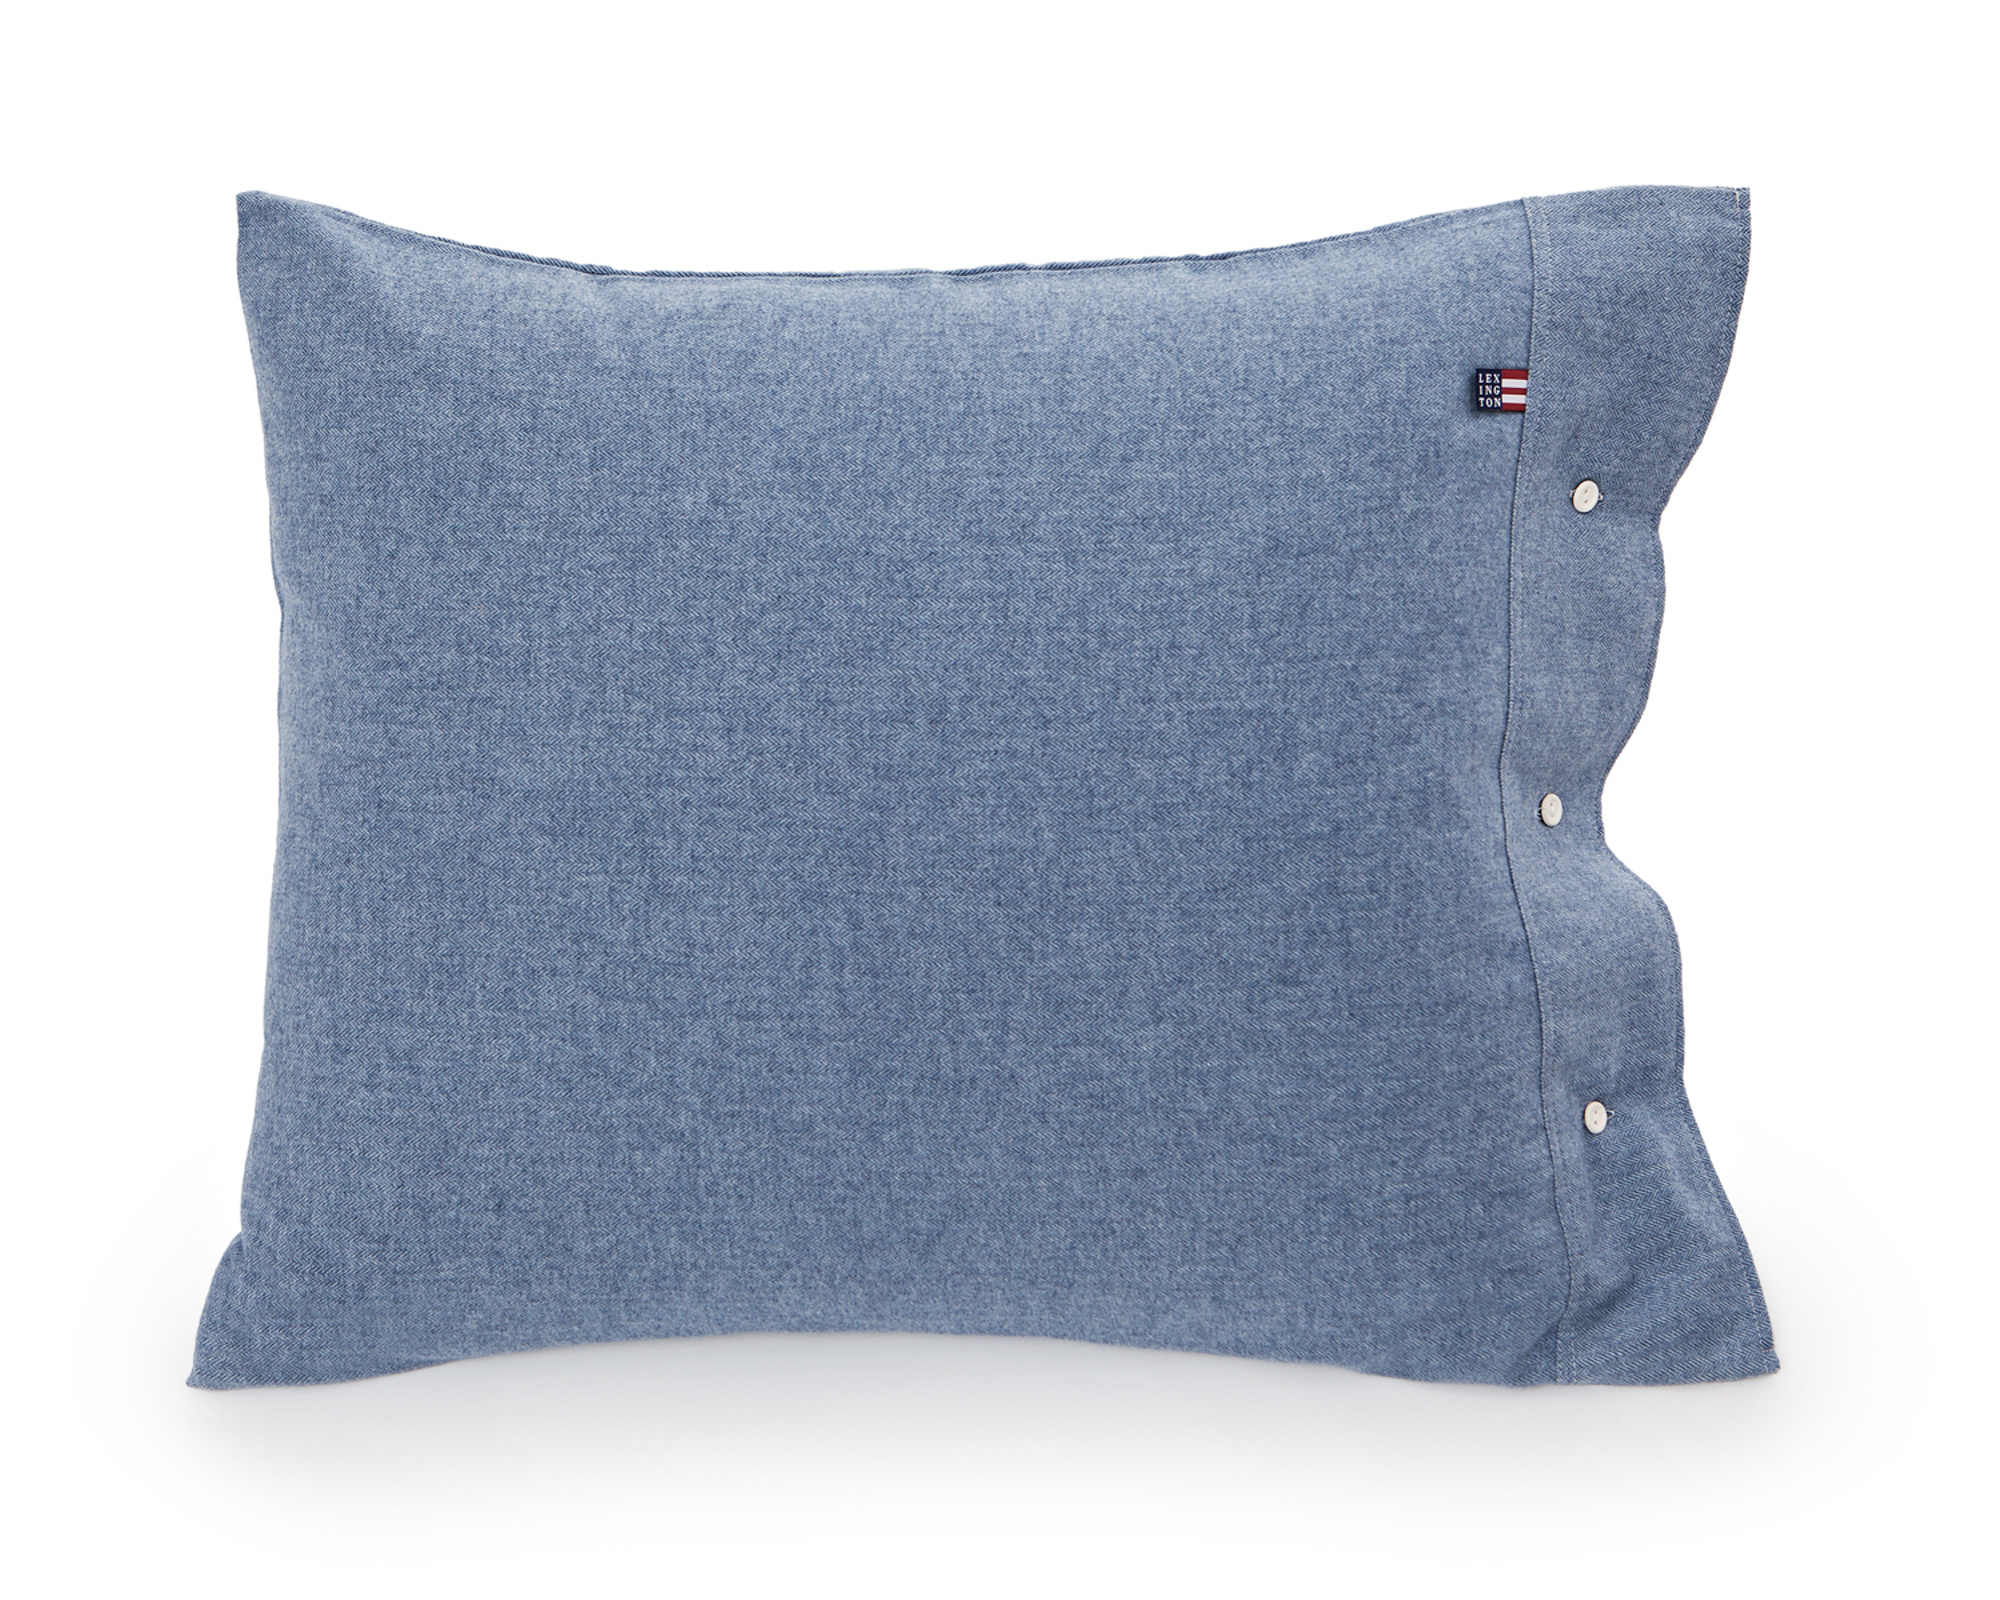 Herringbone_Flannel_Pillowcase_50X70_€69.98